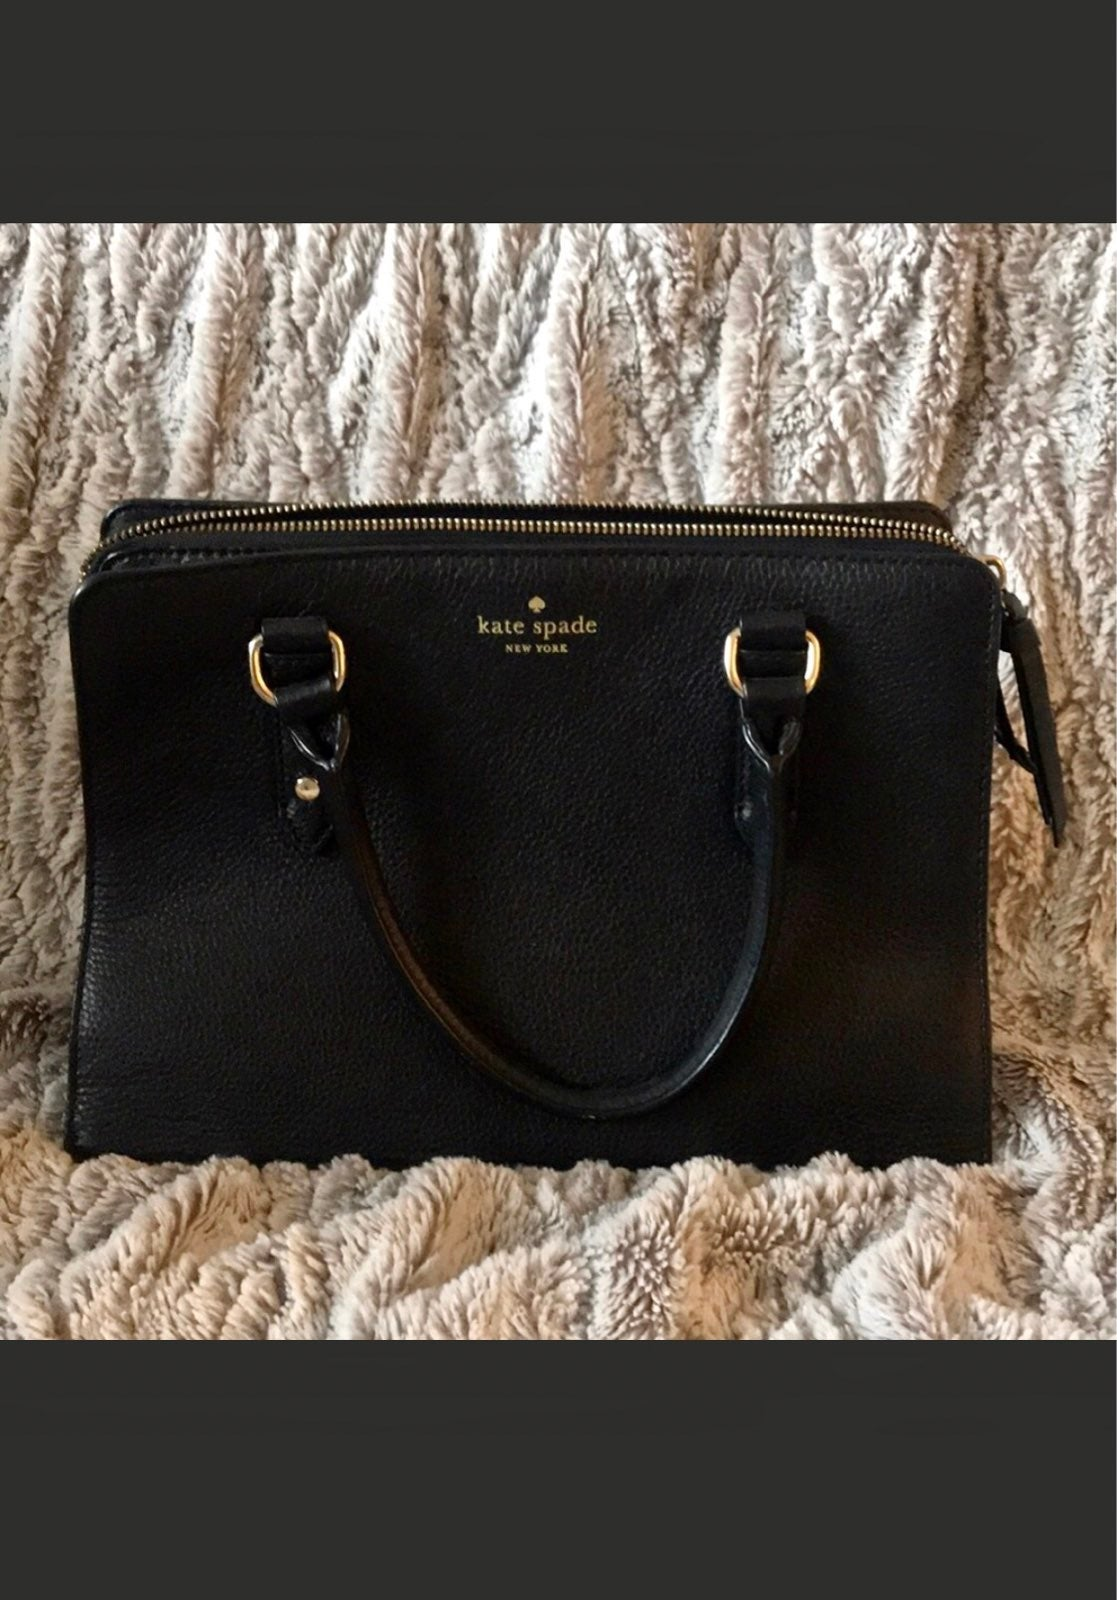 Kate Spade New York Black Purse